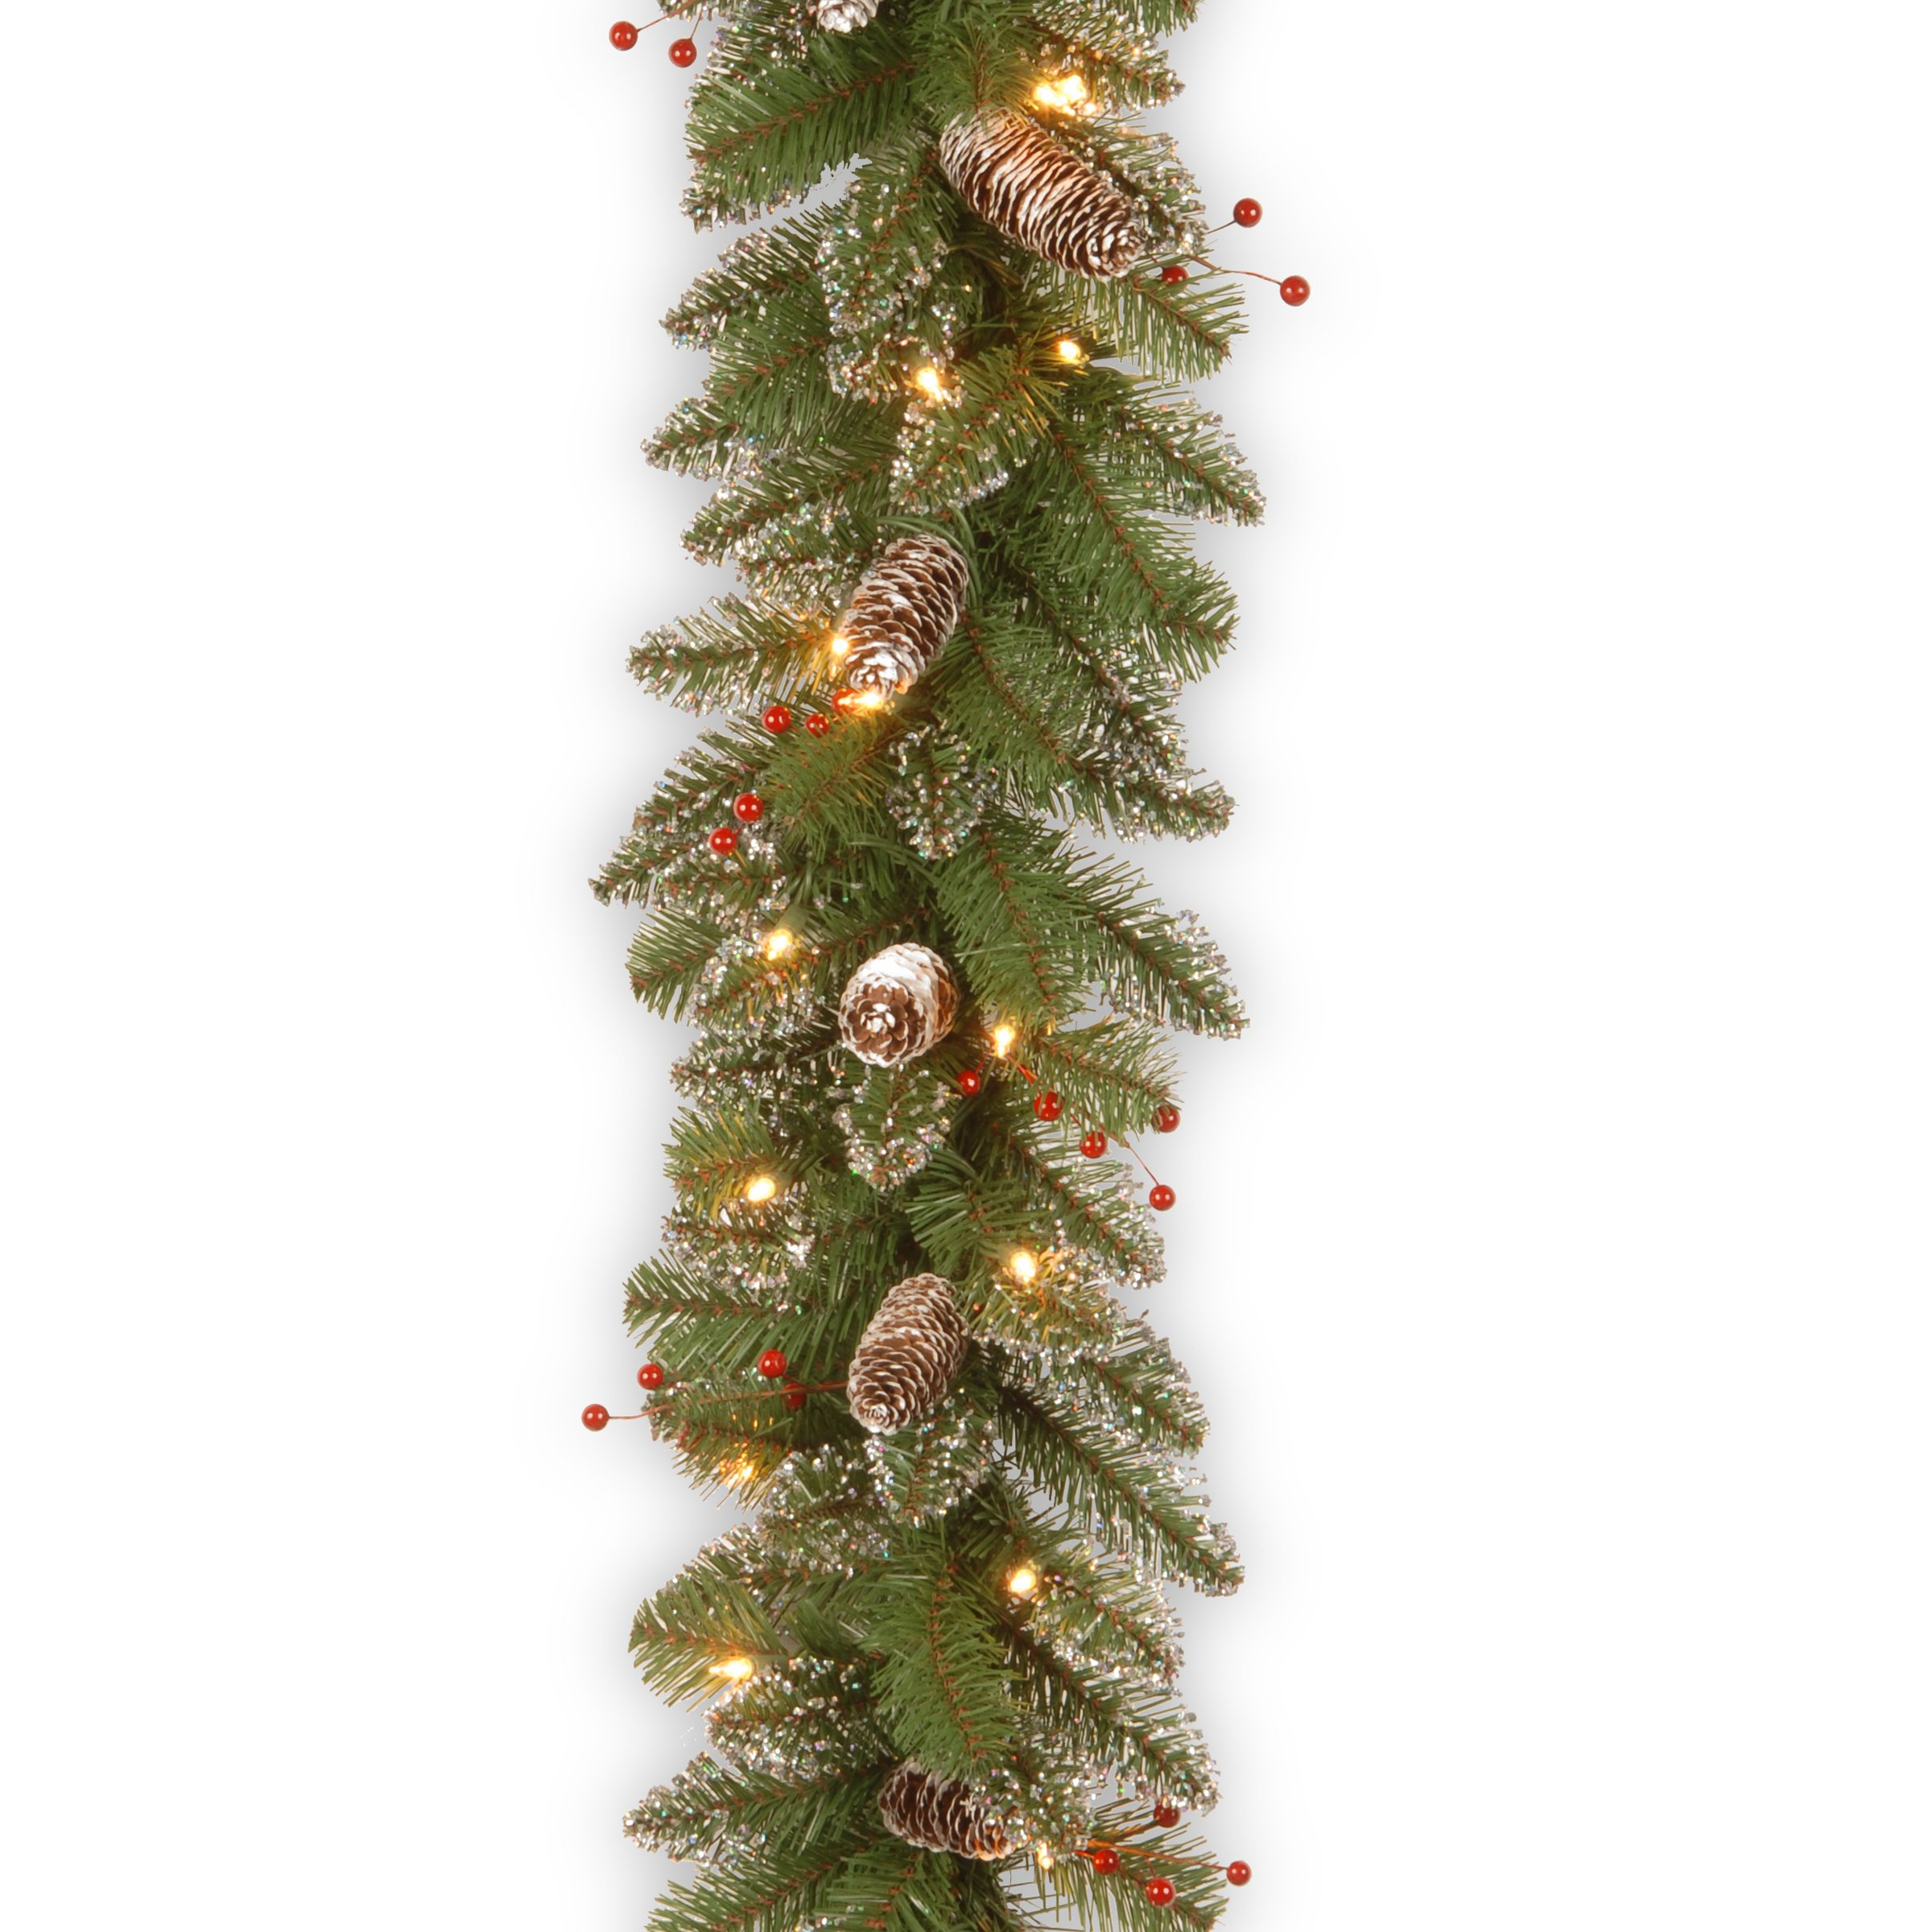 National Tree 9 Foot by 10 Inch Glittery Mountain Spruce Garland with Red Berries, White Tipped Cones and 50 Clear Lights (GLM1-300-9A-1)